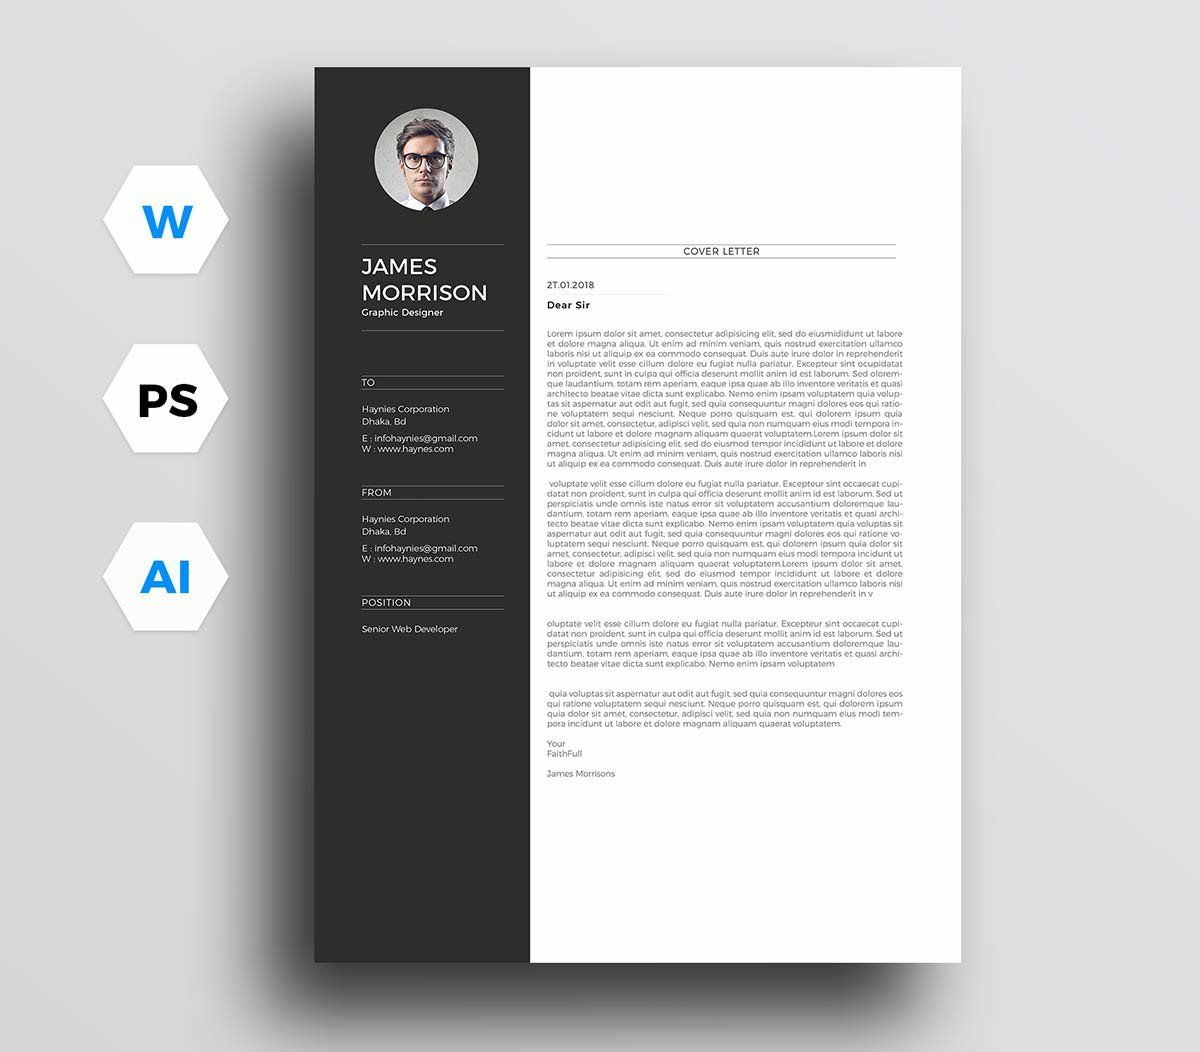 001 Sensational Cover Letter Template Word Free High Definition  Creative Sample Doc Microsoft 2007Full